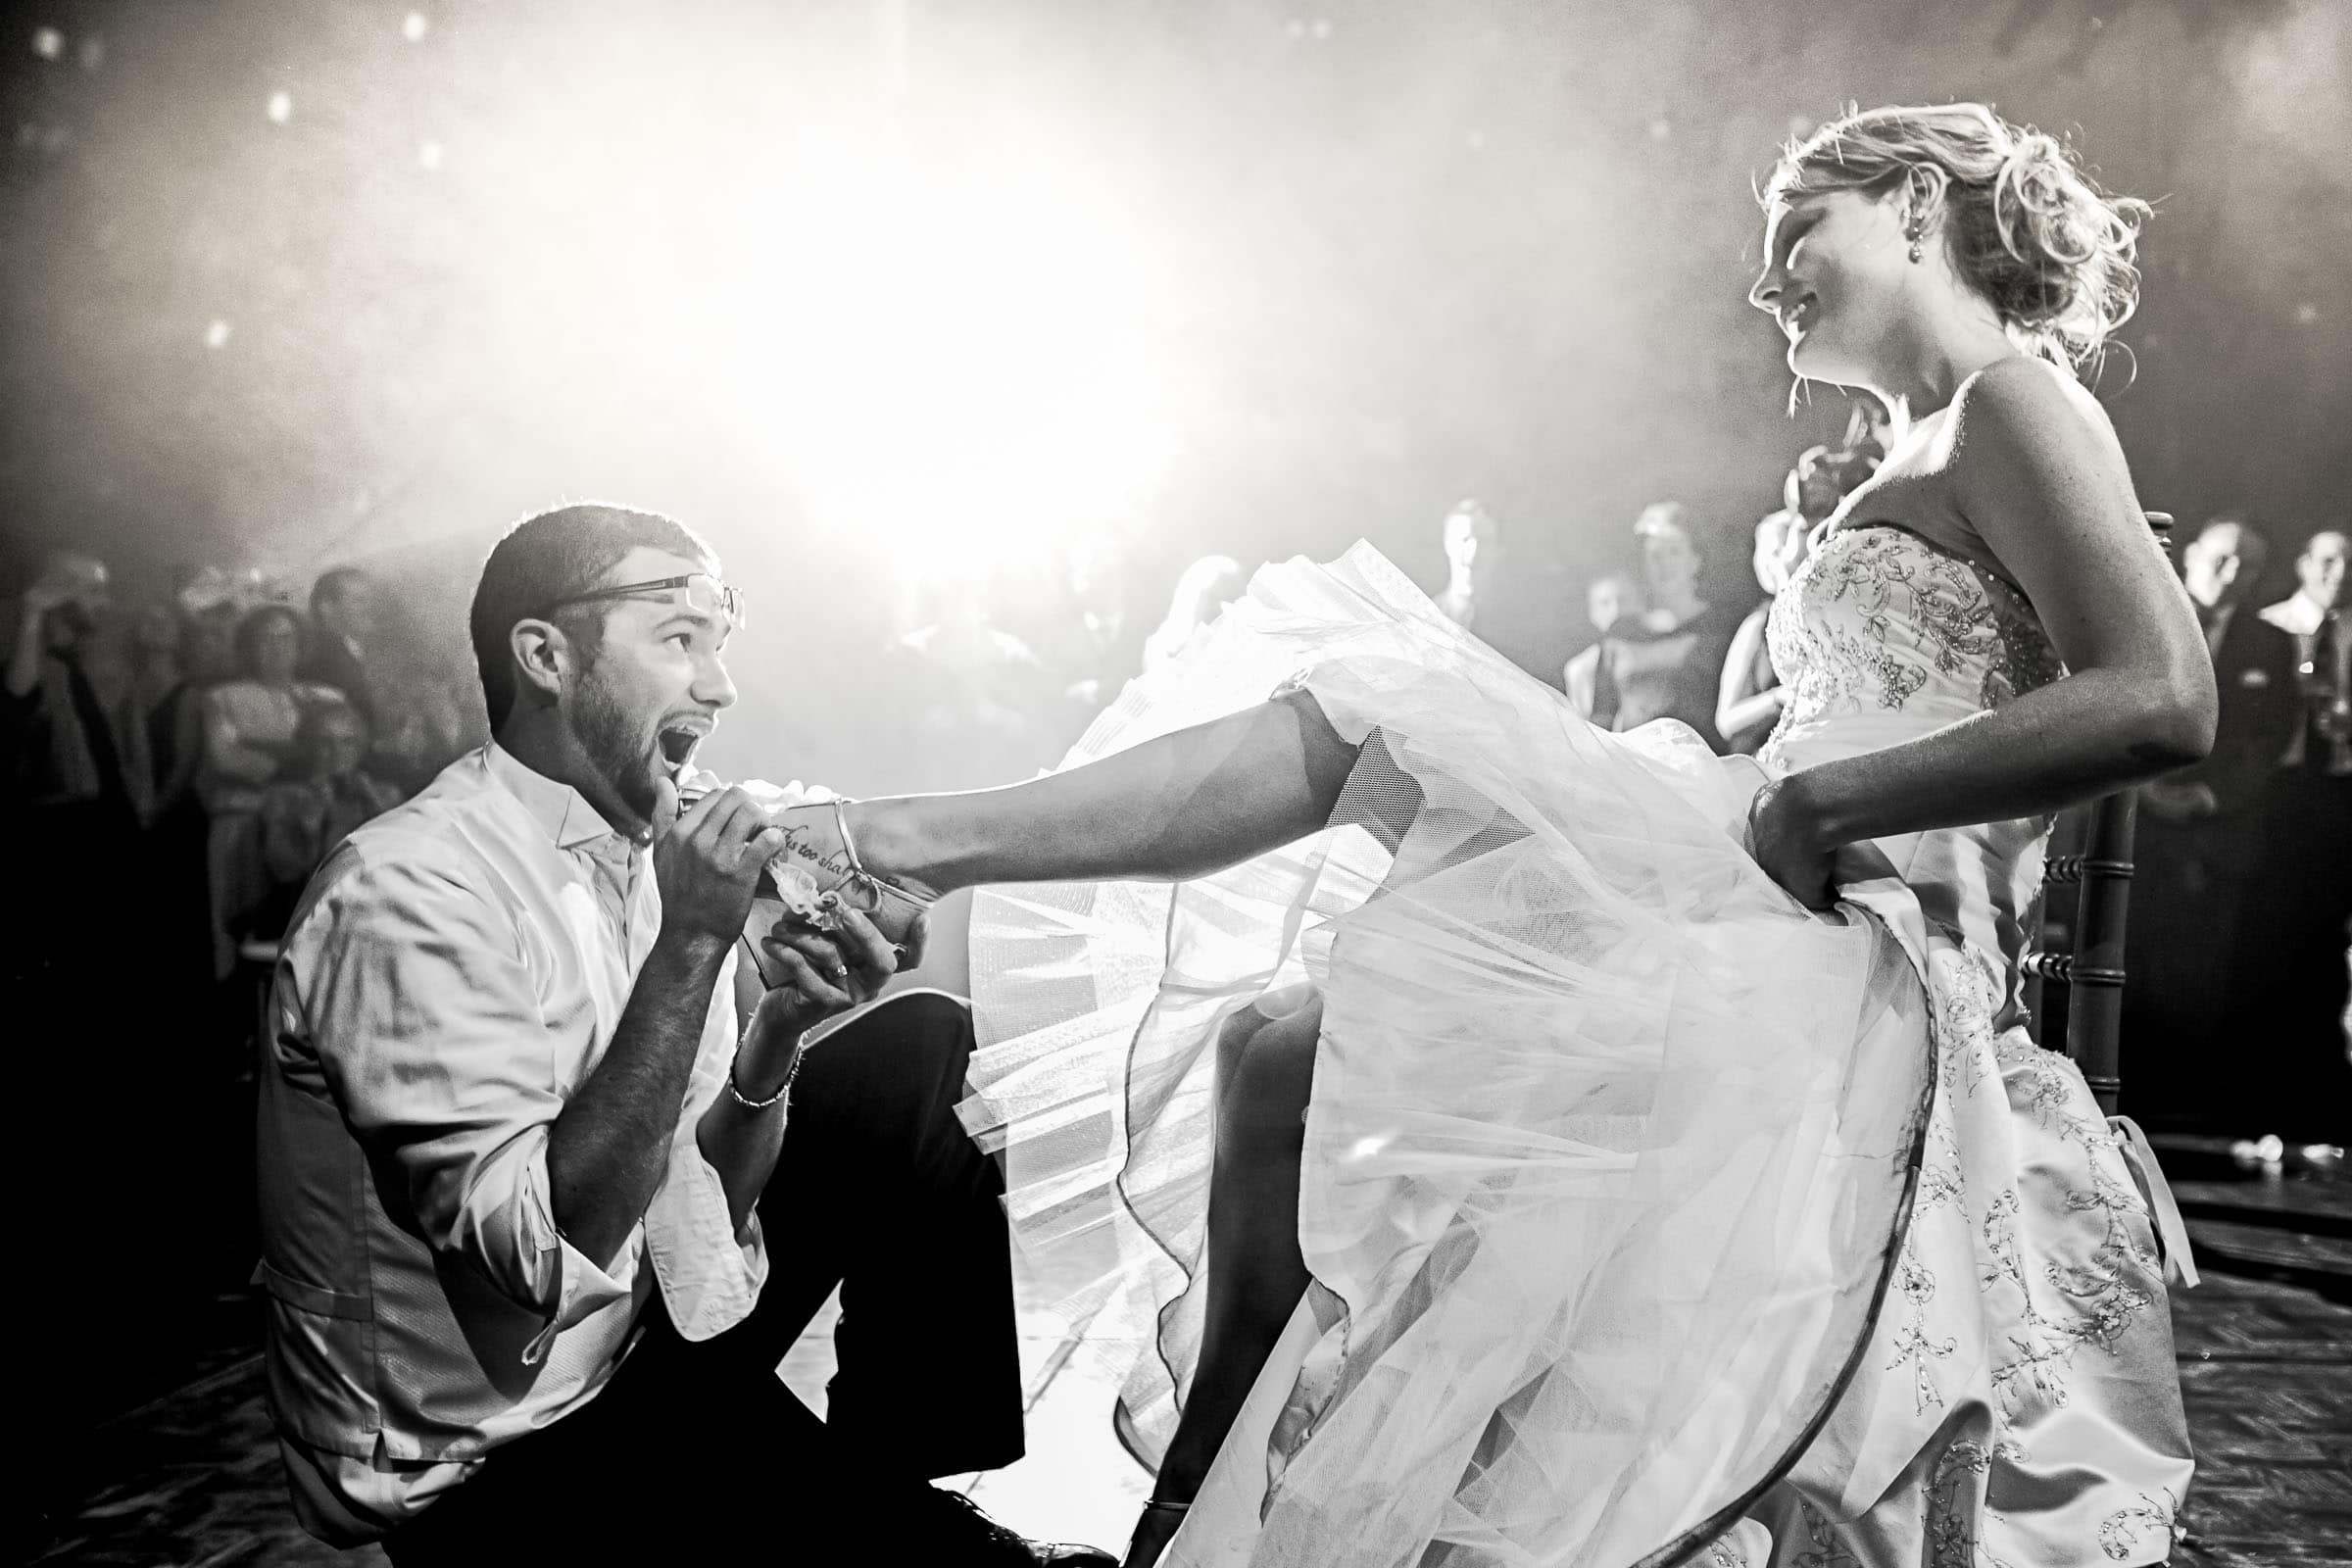 Groom taking the garter off his bride during their Trapp Family Lodge wedding reception in Stowe, Vermont.